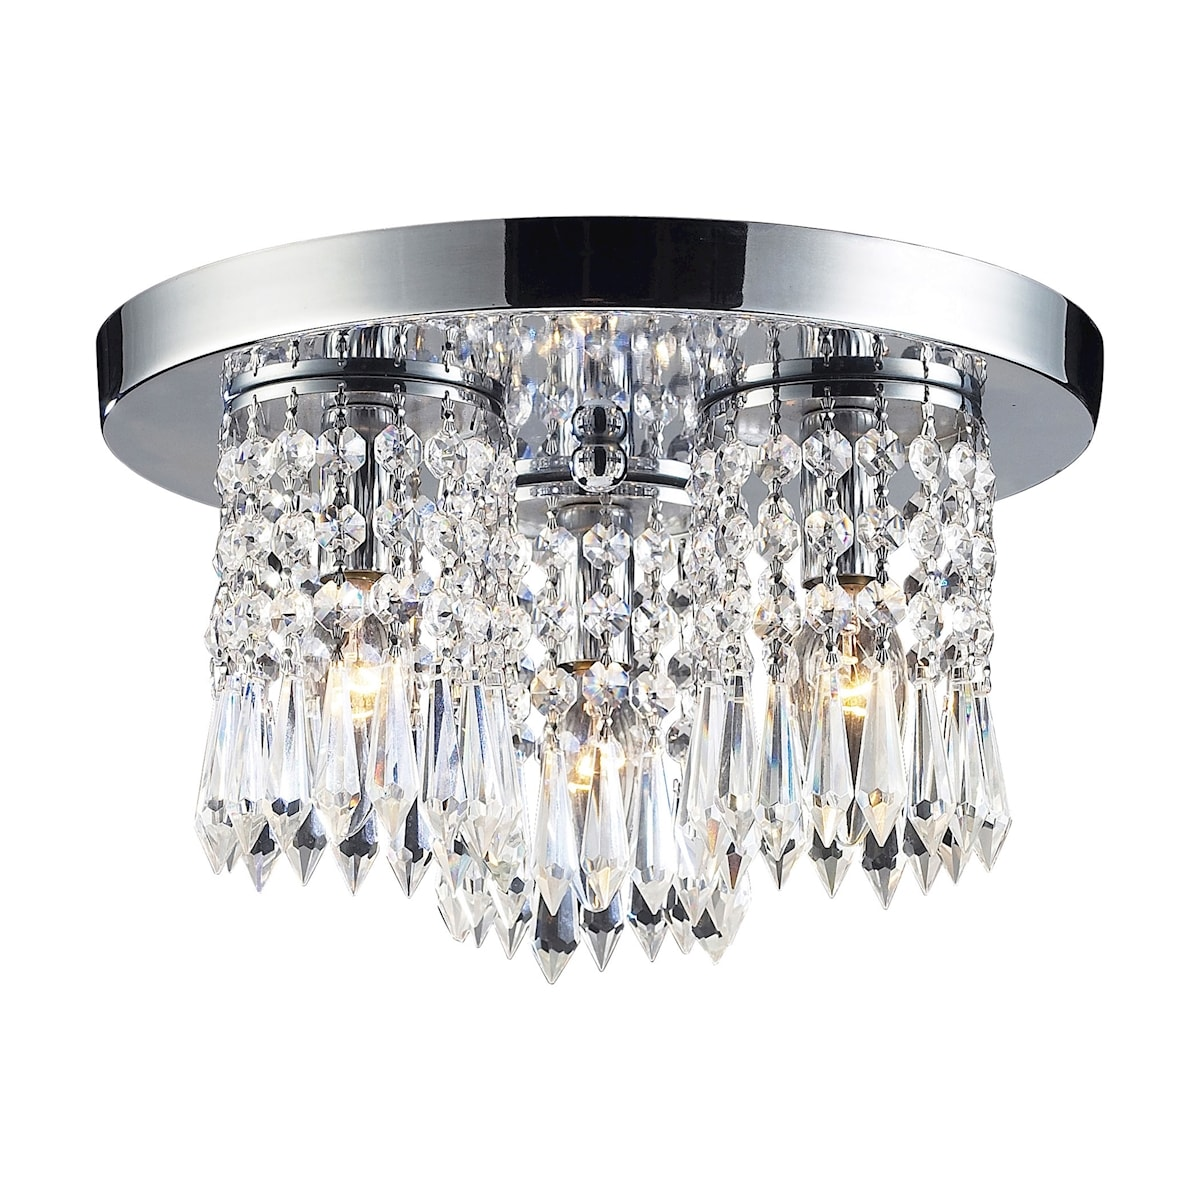 EL-1990/3_Optix Collection 3-Light Semi-Flush with 32% Lead Crysal and Polished Chrome Fin